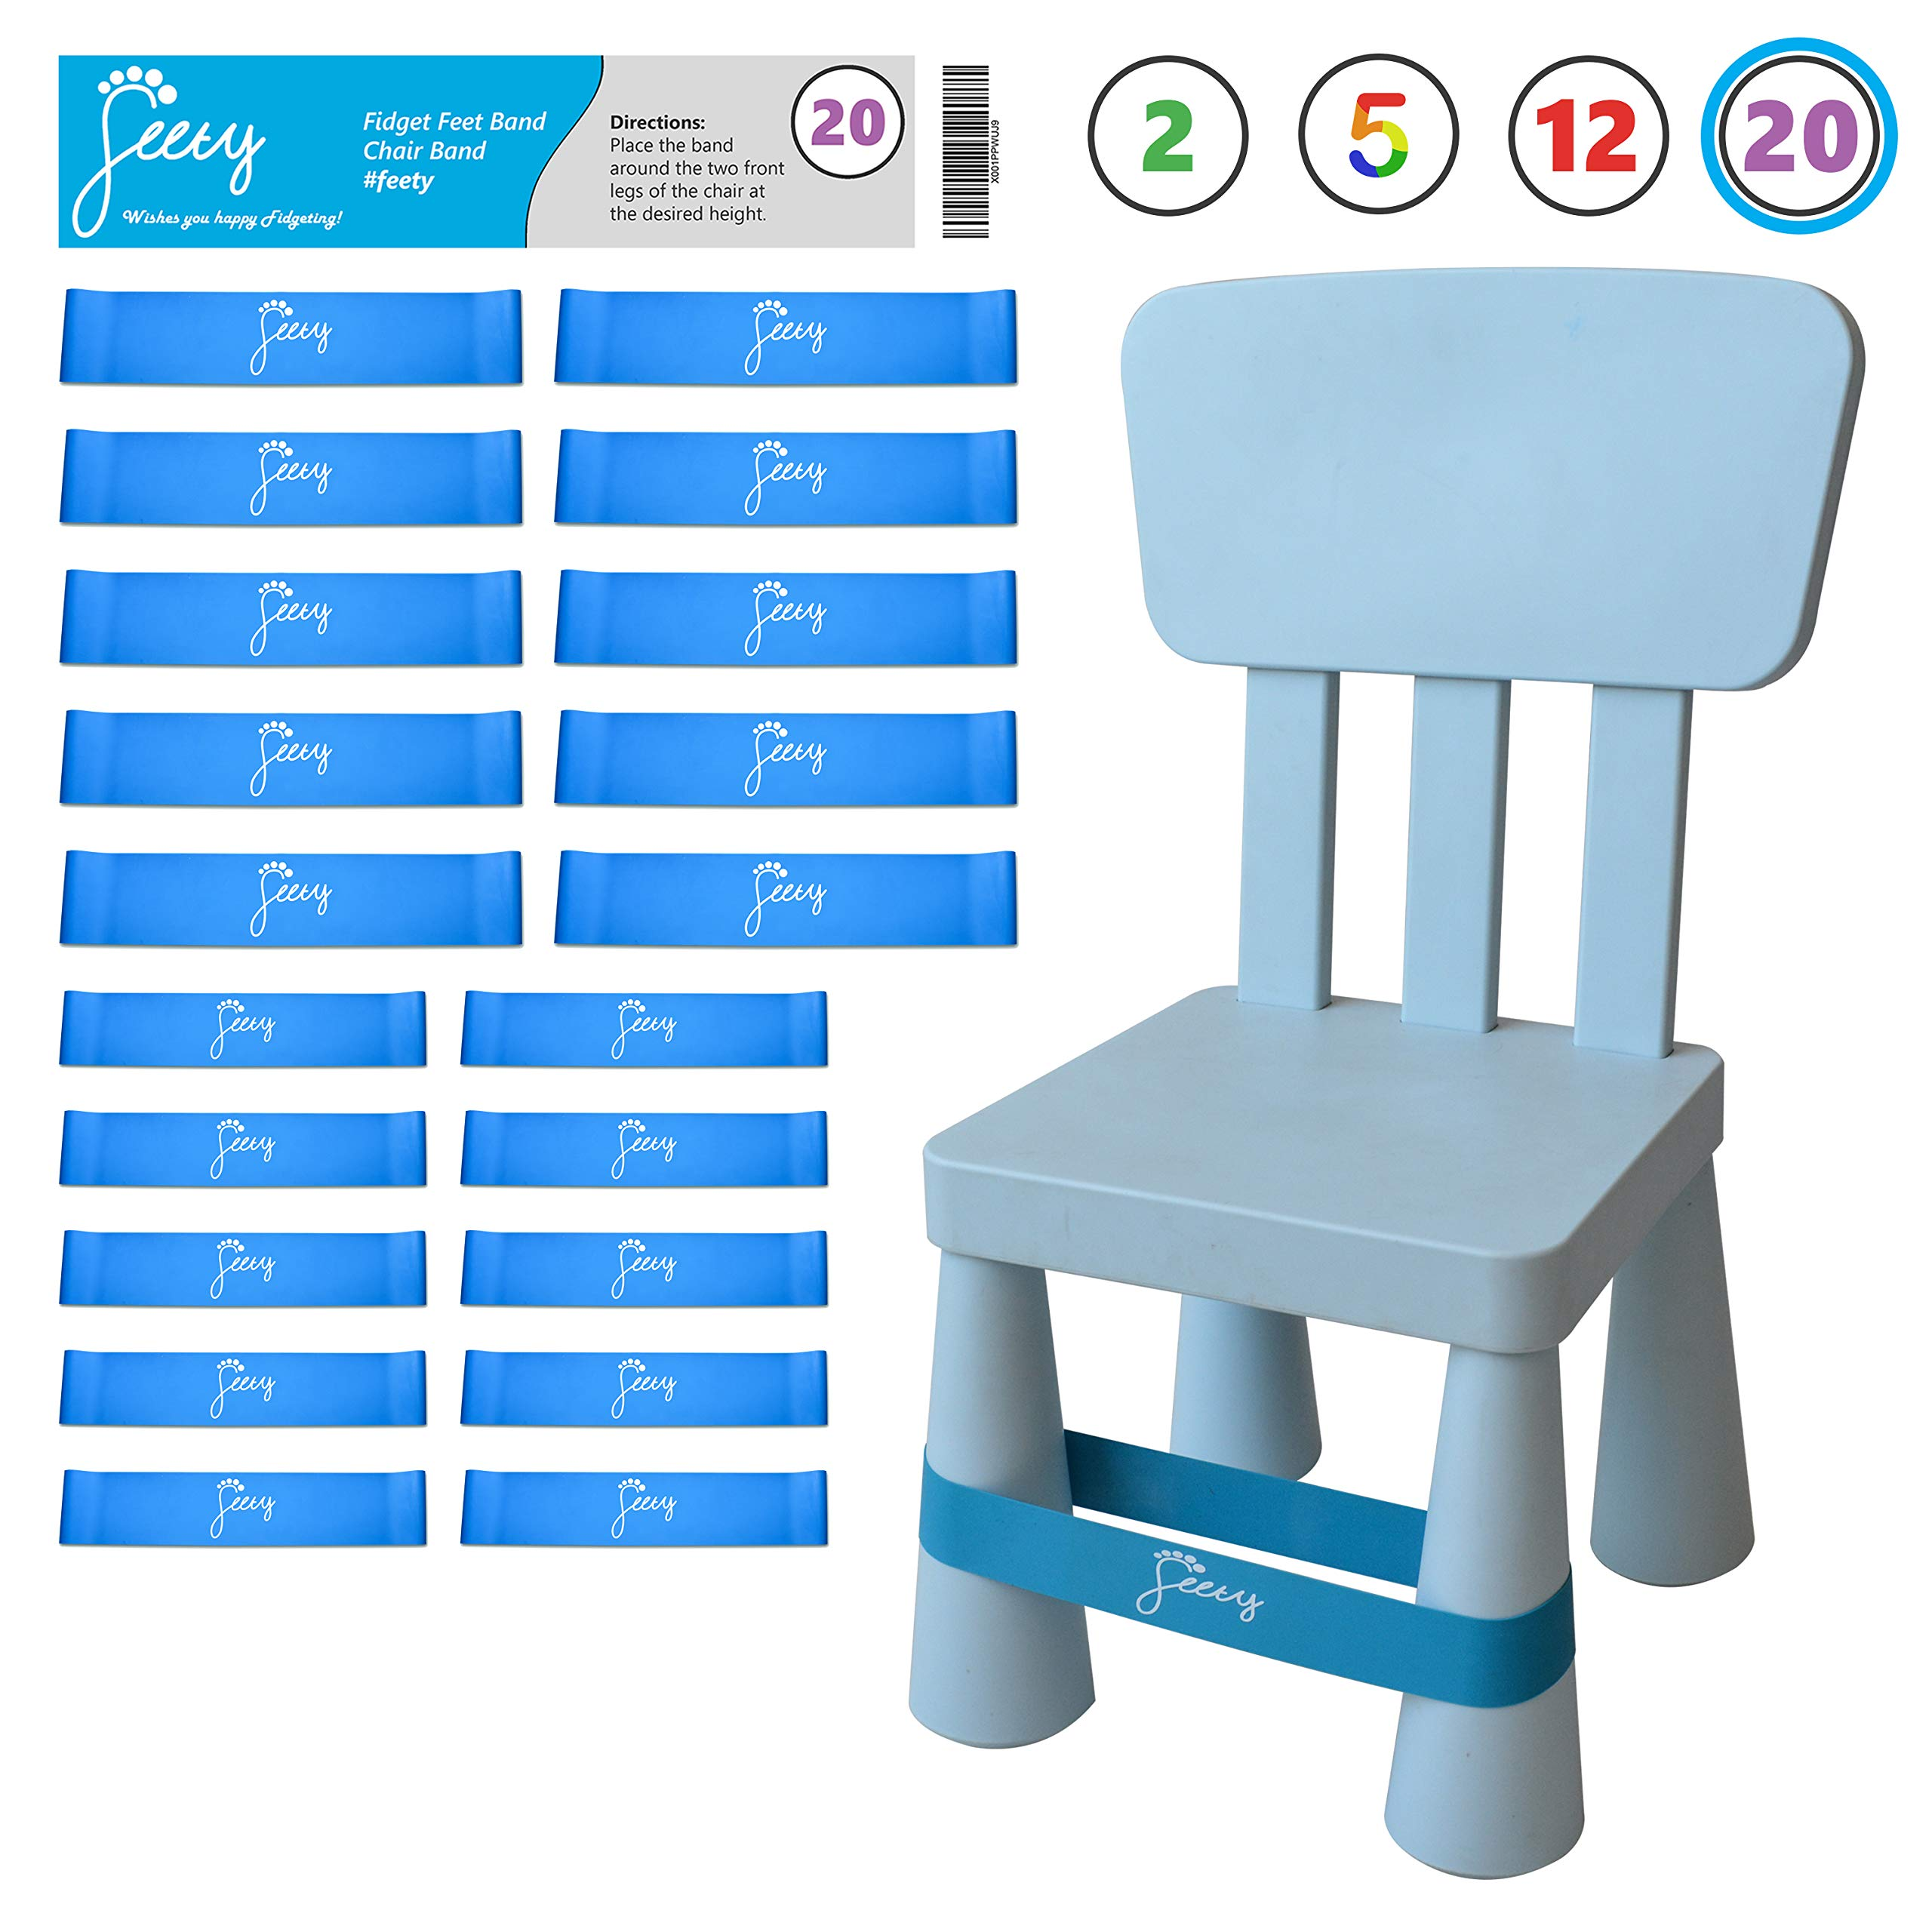 Chair Bands for ADHD Kids - (20-Pack) Bouncy Kick Fidgets for Elementary, Middle, High School Students and Adults for Classroom Chairs and Desk - (Light Blue) Fidget Feet Band by Feety by Feety Bands